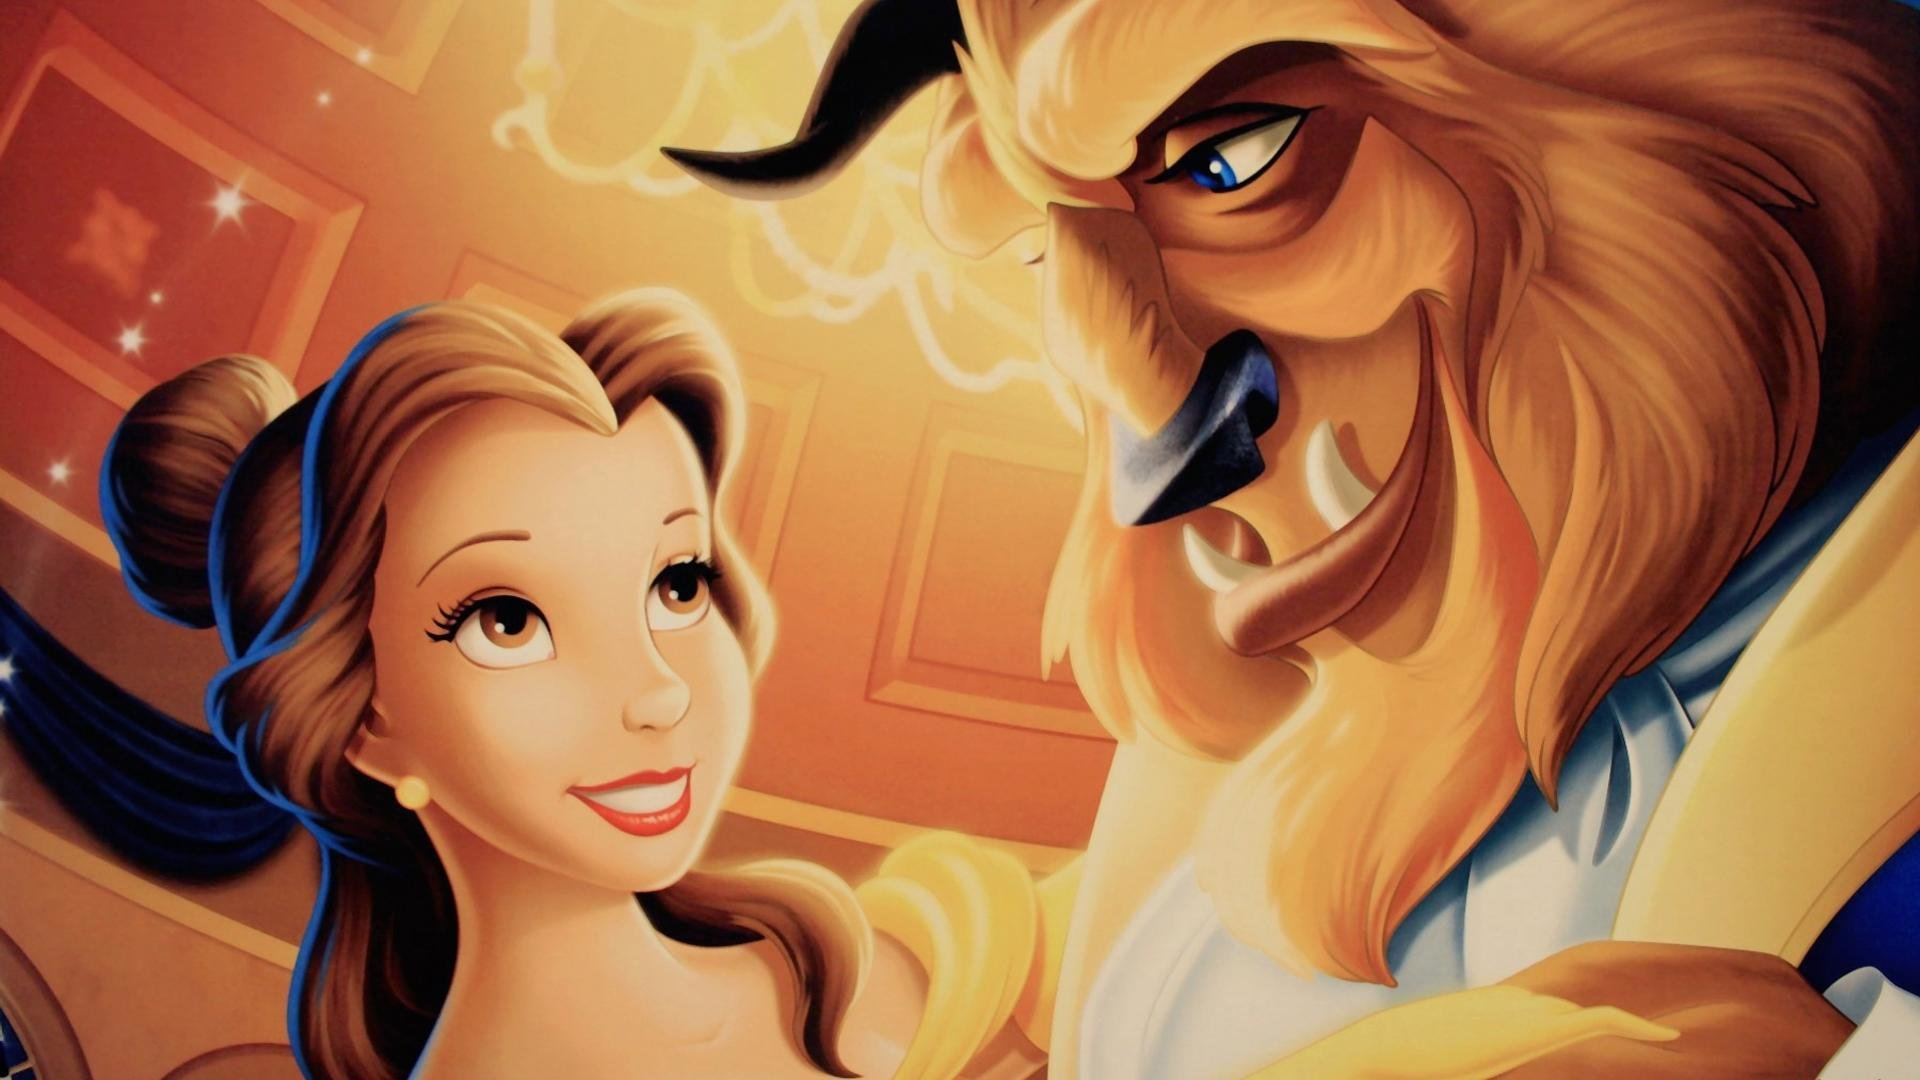 Beauty And The Beast Wallpapers 1920x1080 Full Hd 1080p Desktop